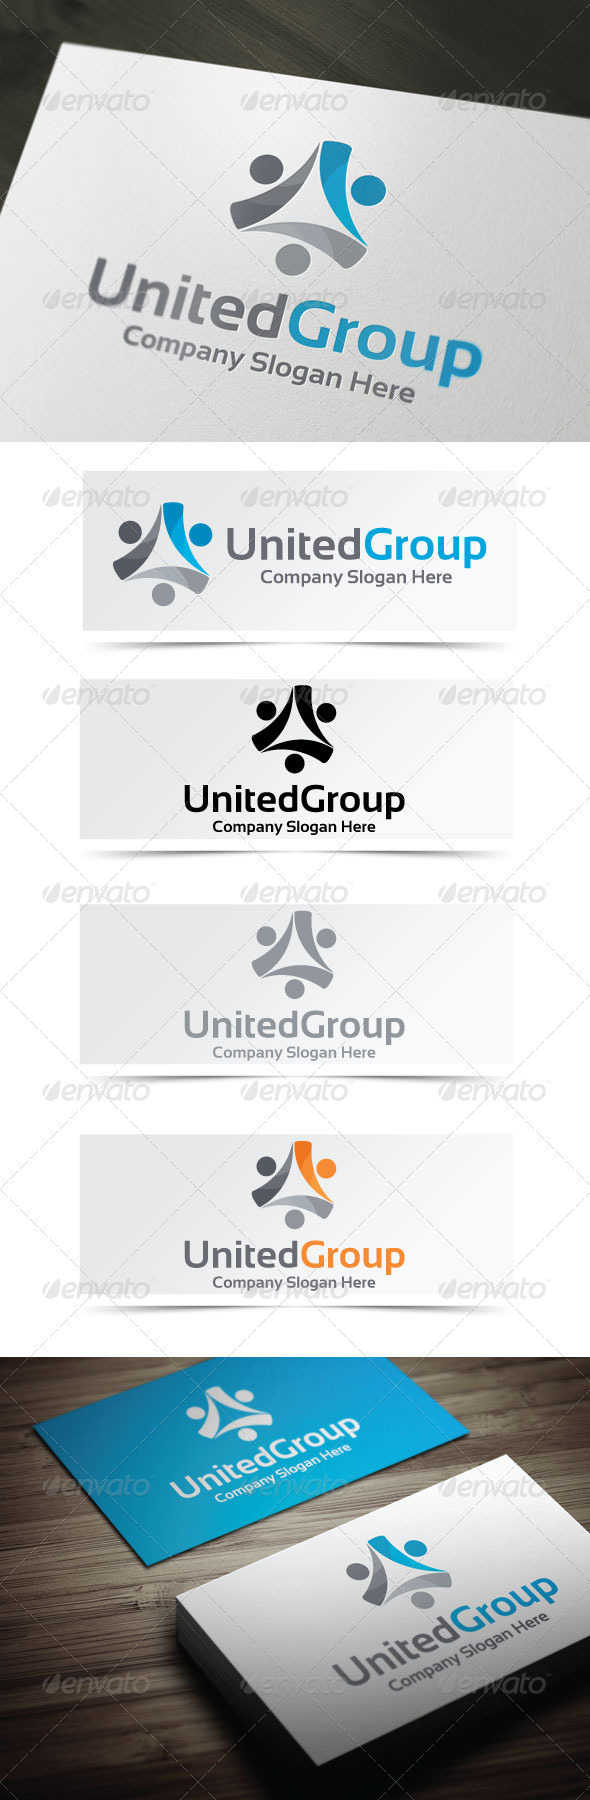 United Group - Humans Logo Templates